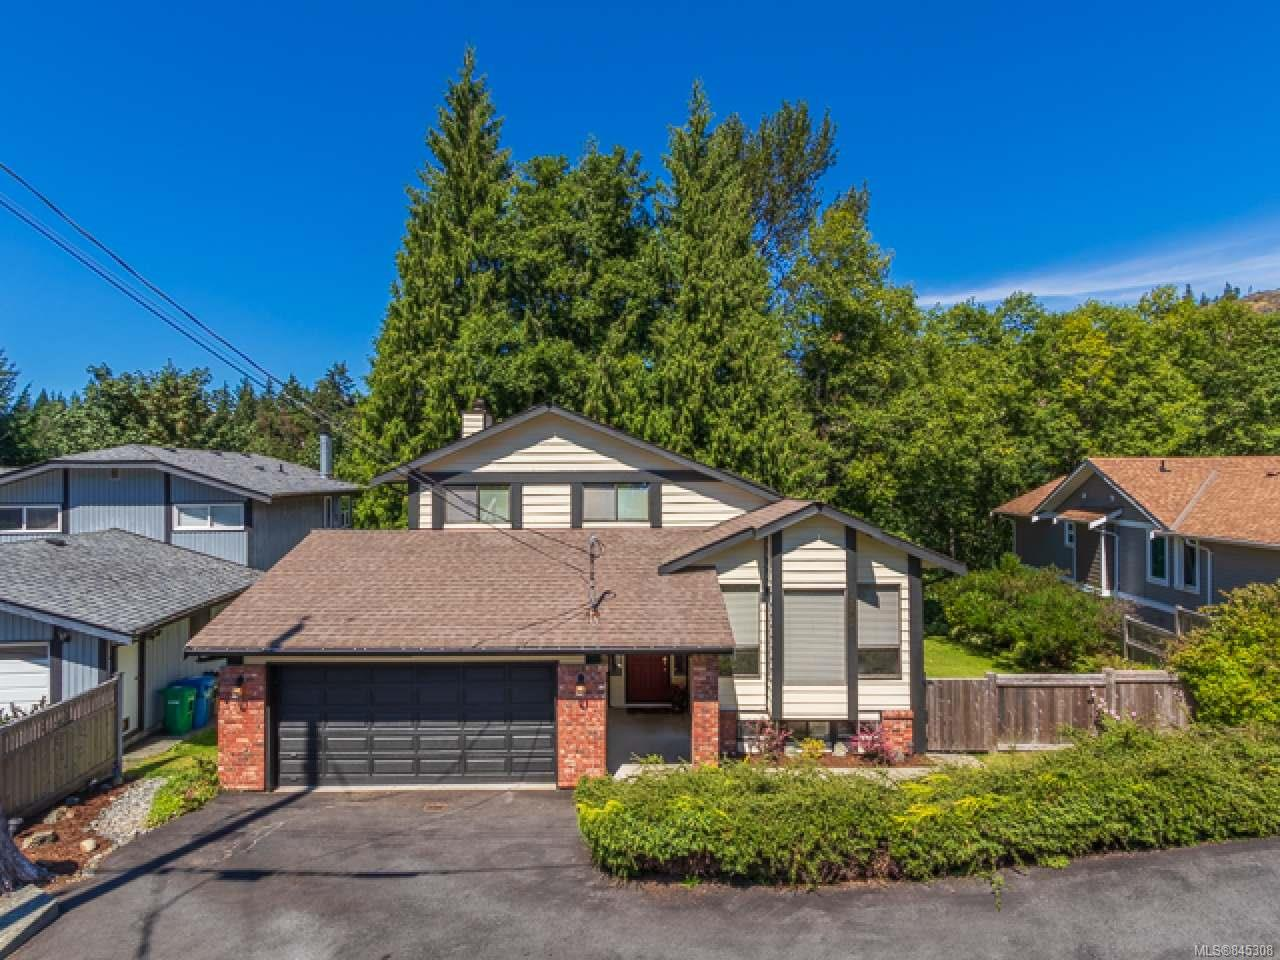 FEATURED LISTING: 3581 Fairview Dr NANAIMO